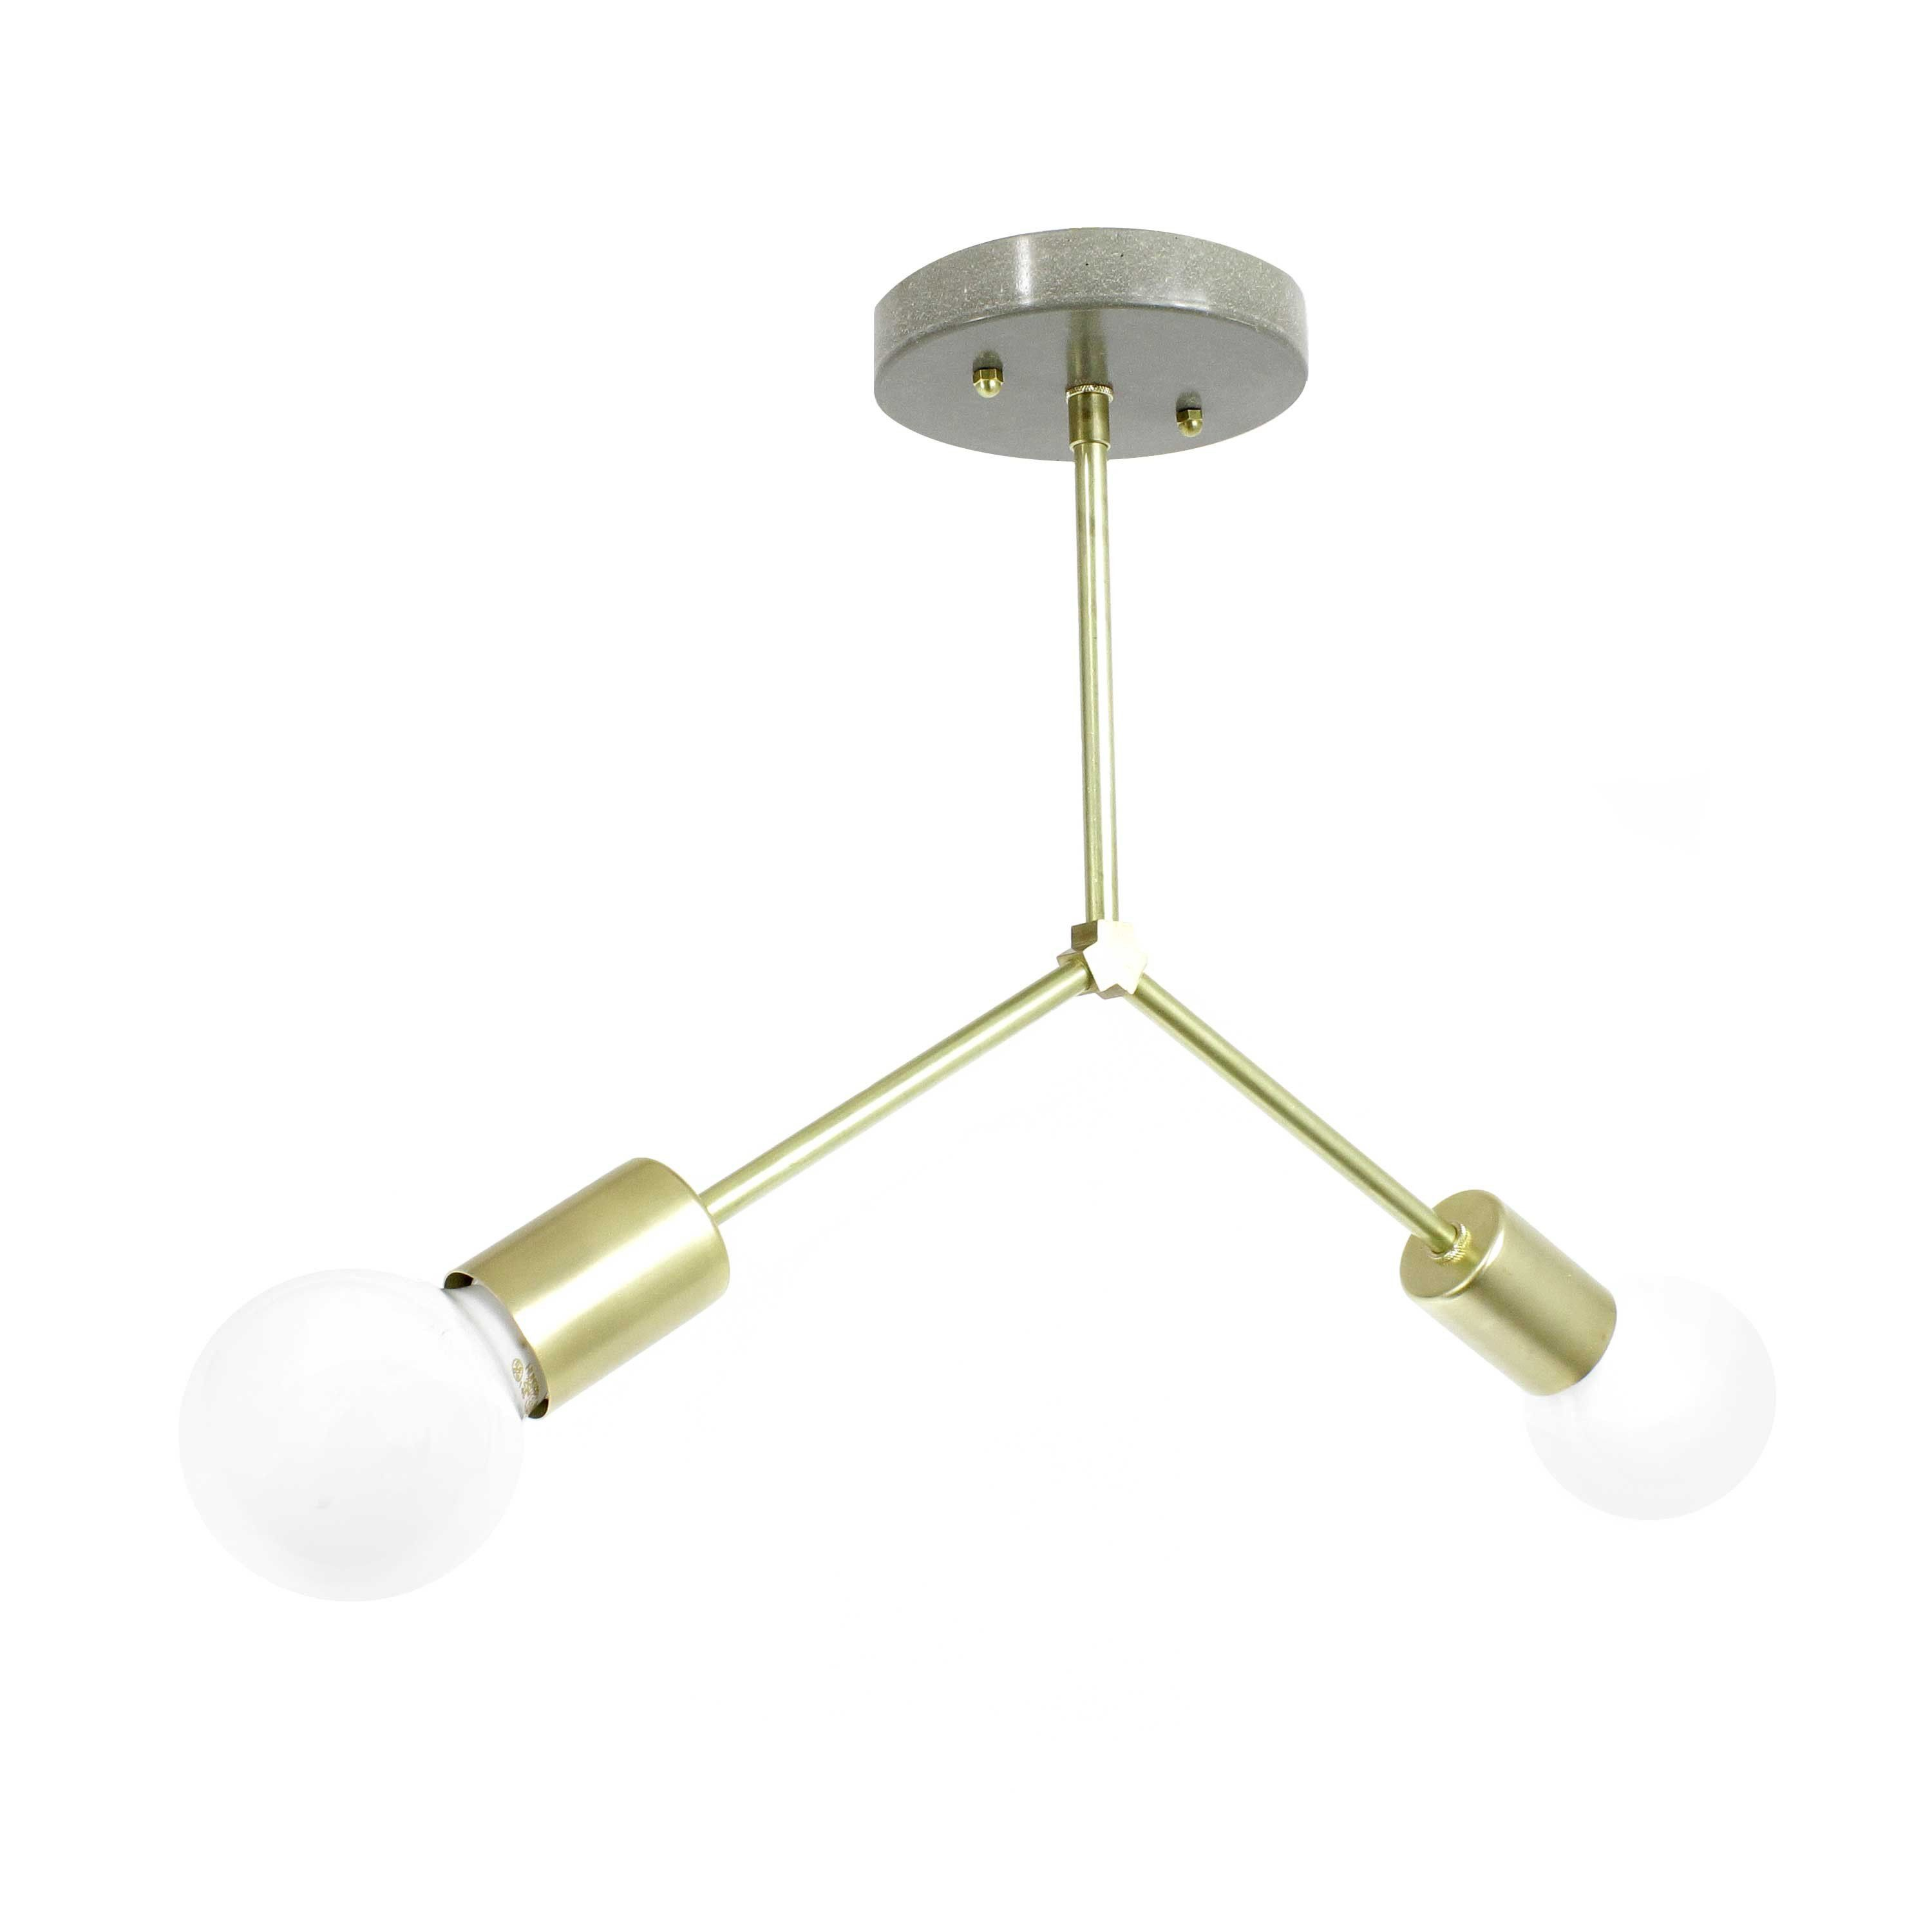 Y branch hanging light chandelier ceiling mount products y branch hanging light chandelier ceiling mount arubaitofo Choice Image